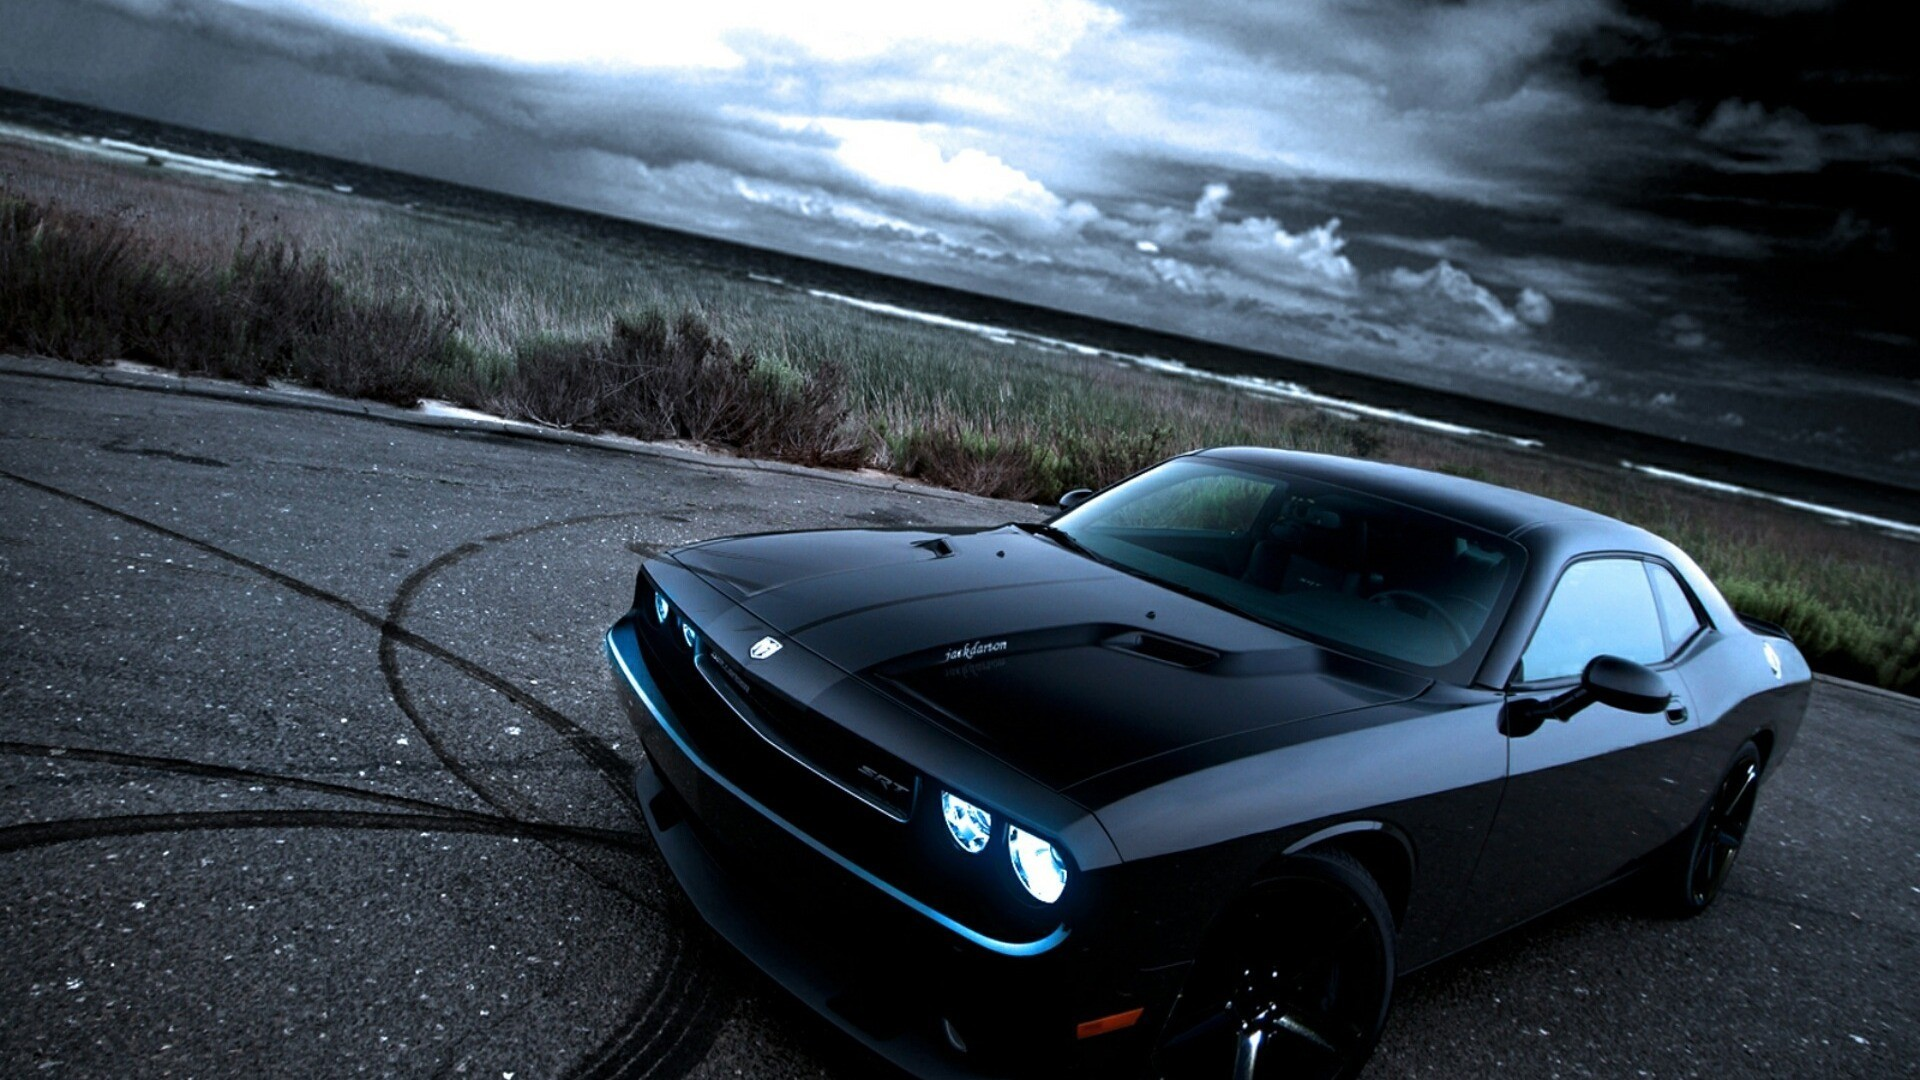 American Black Cars Dodge Dodge Challenger Dodge Challenger Srt Front Angle  View Muscle Cars. hd muscle car wallpapers danasrfitop